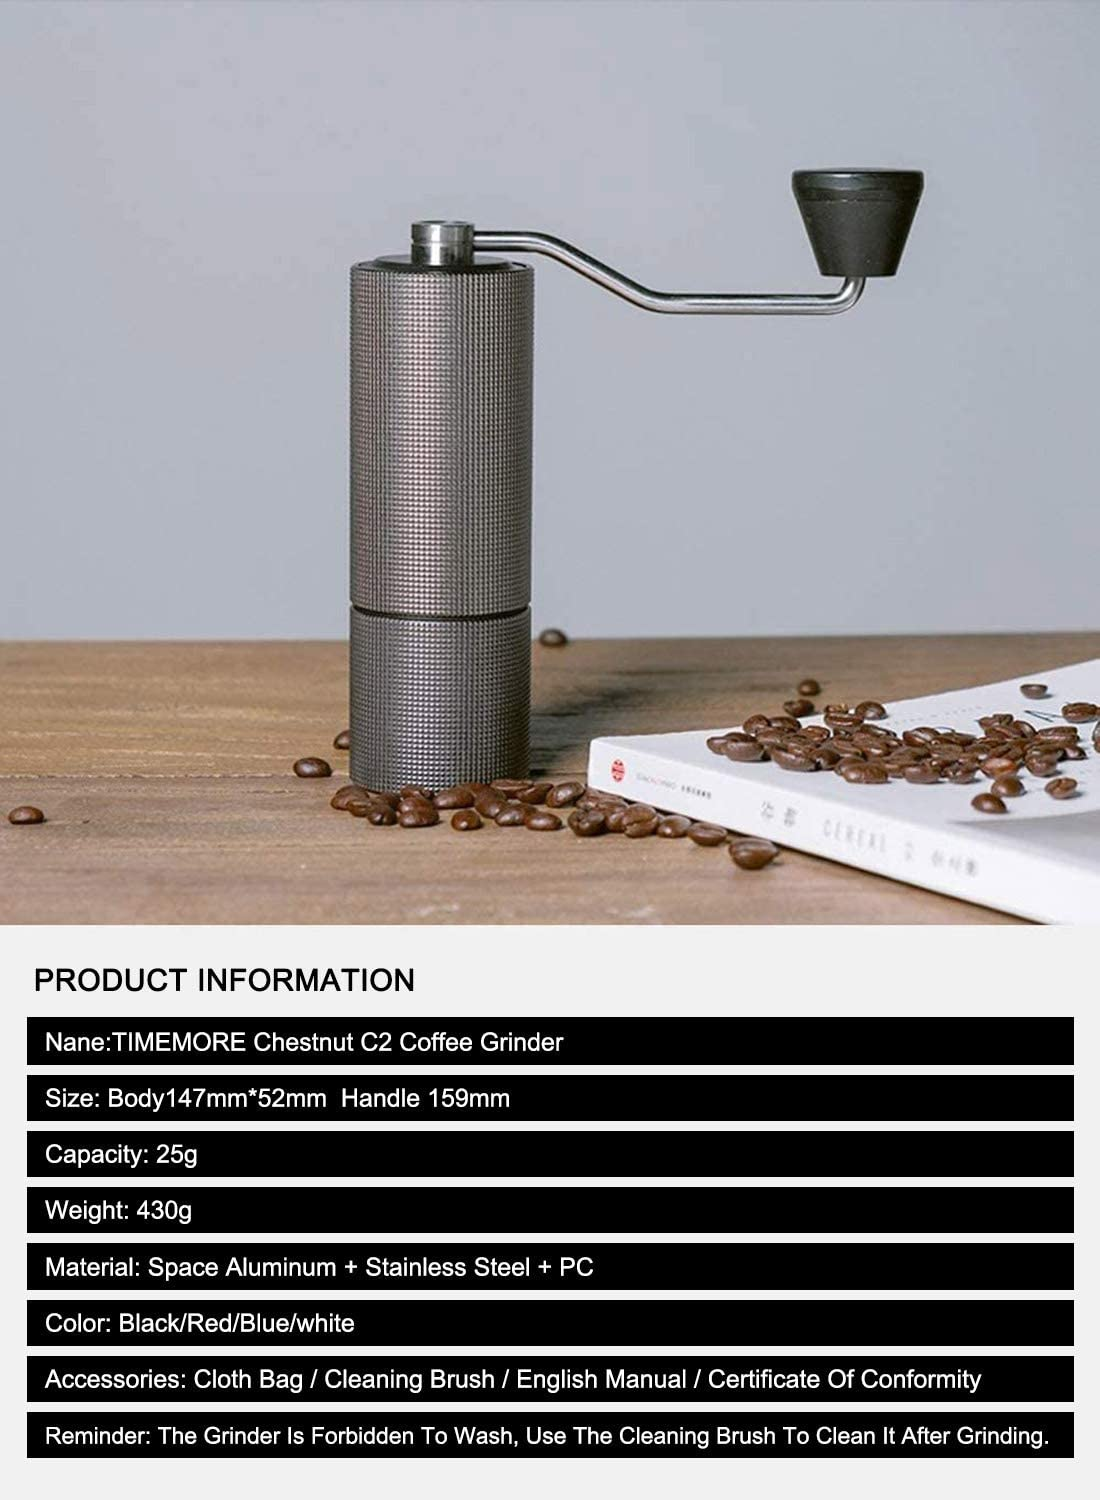 Internal Adjustable Setting,Double Bearing Positioning,French Press Coffee for Hand Grinder Gift TIMEMORE Chestnut C2 Manual Coffee Grinder Capacity 25g with CNC Stainless Steel Conical Burr